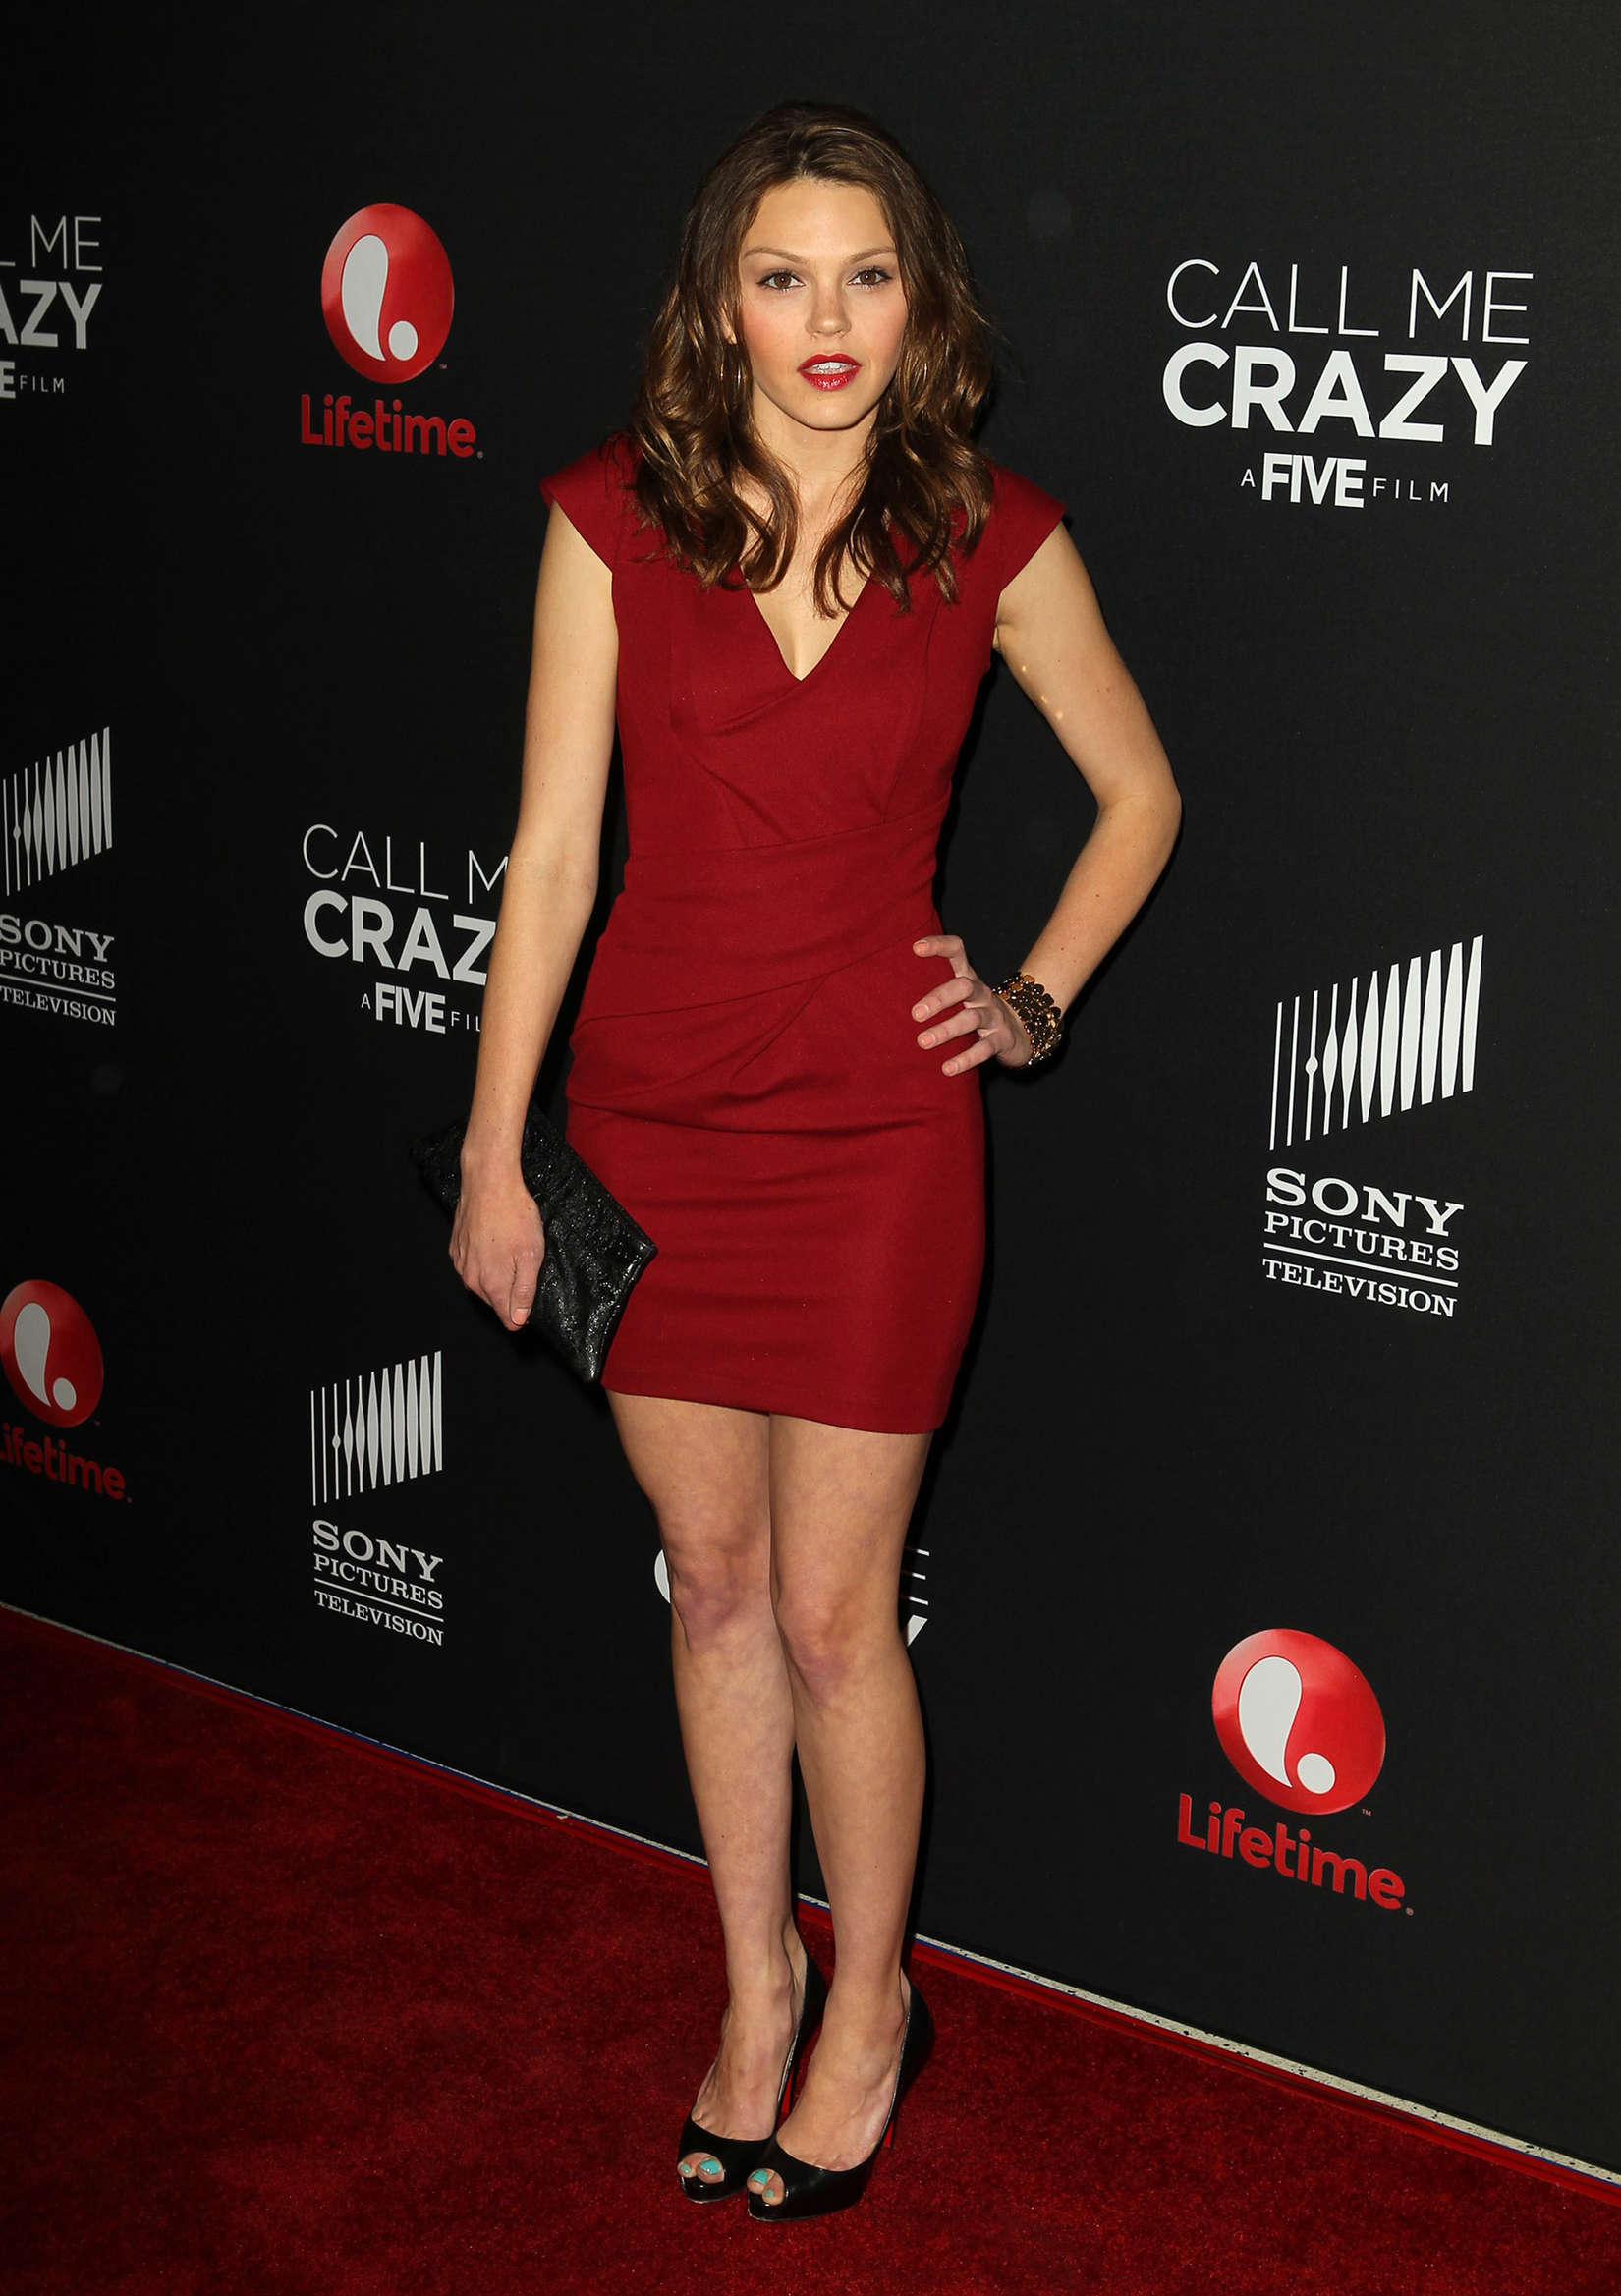 Aimee Teegarden at Call Me Crazy A Five Film Premiere in West Hollywood